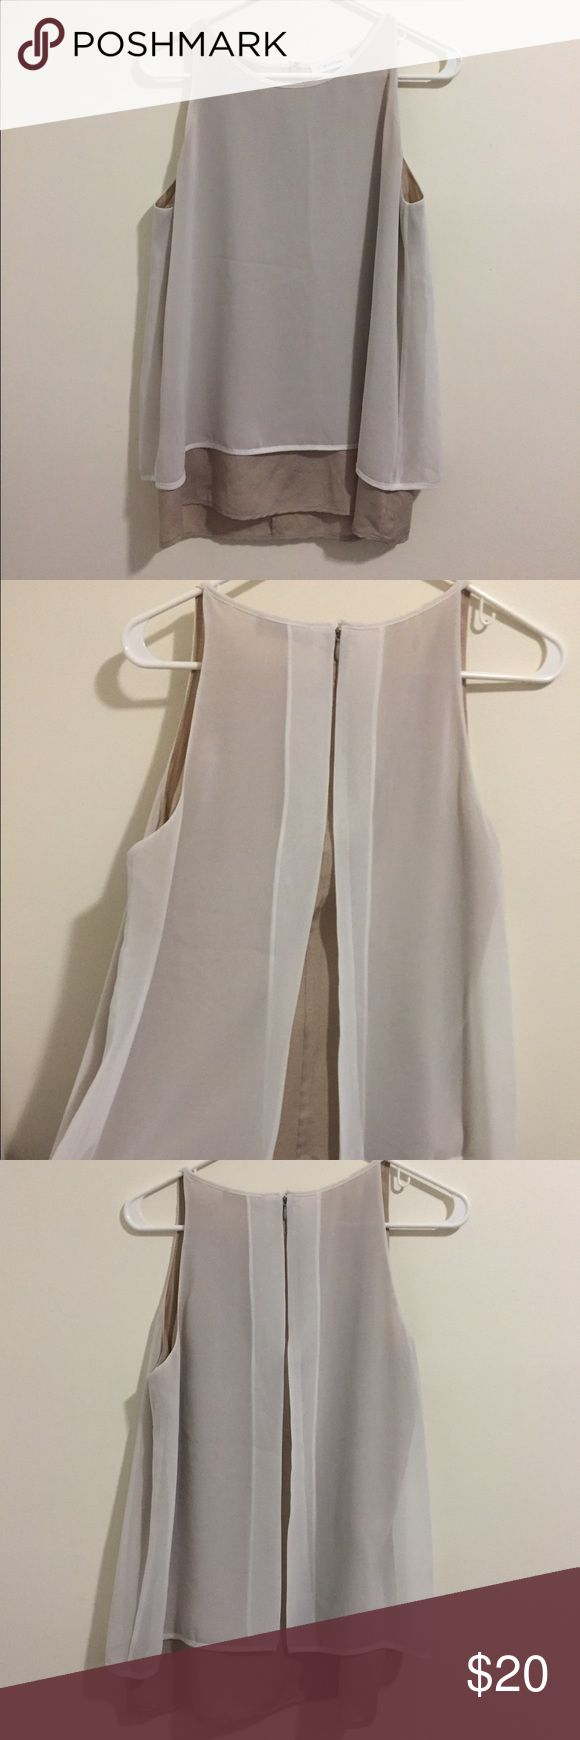 Calvin Klein blouse Calvin Klein blouse with white overlay and beige under-slip. Zip closure in the back. Fits like a small/medium. Calvin Klein Tops Blouses